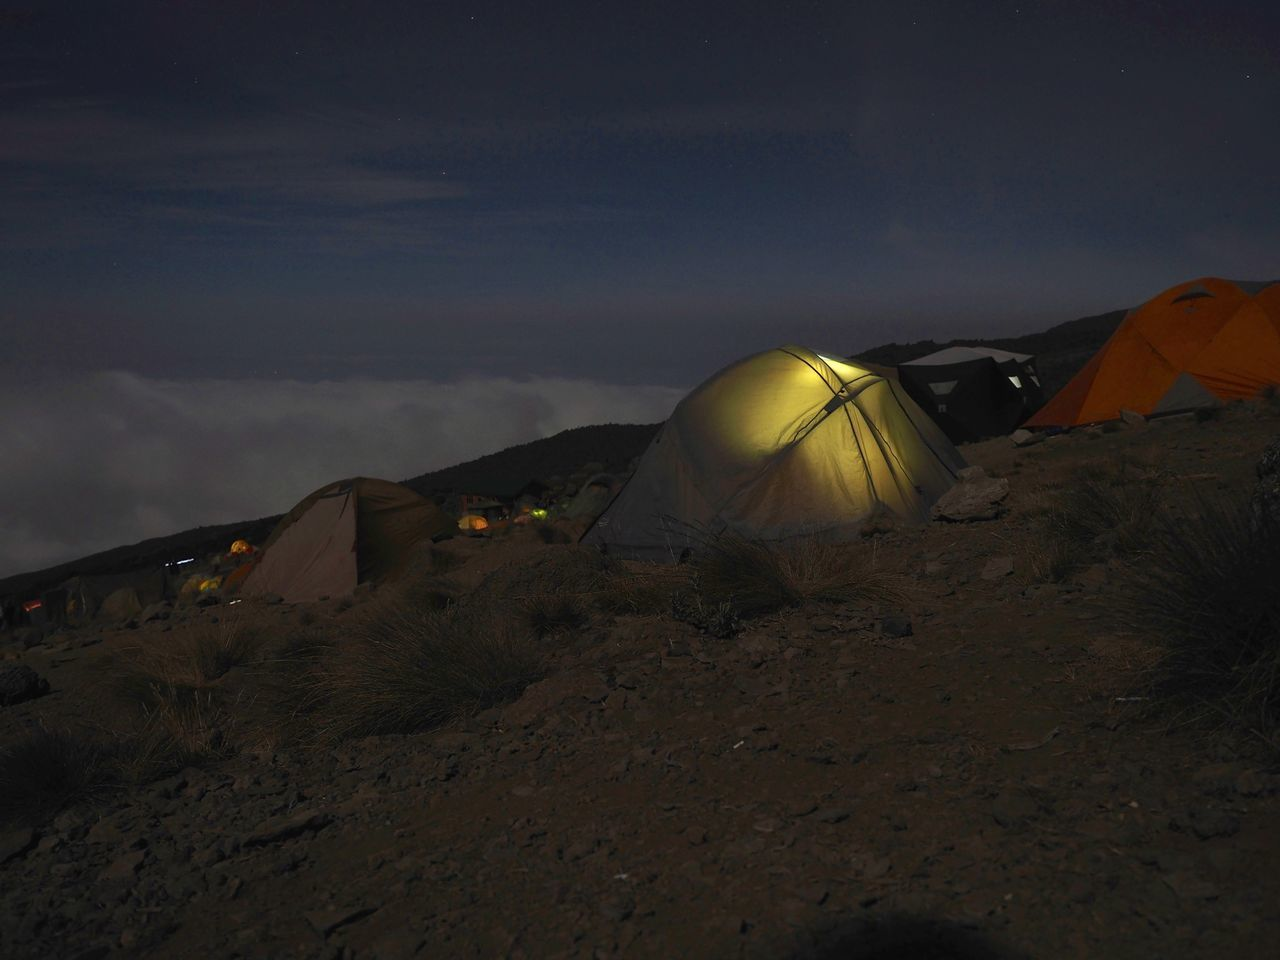 Low angle view of illuminated tents on hill at night